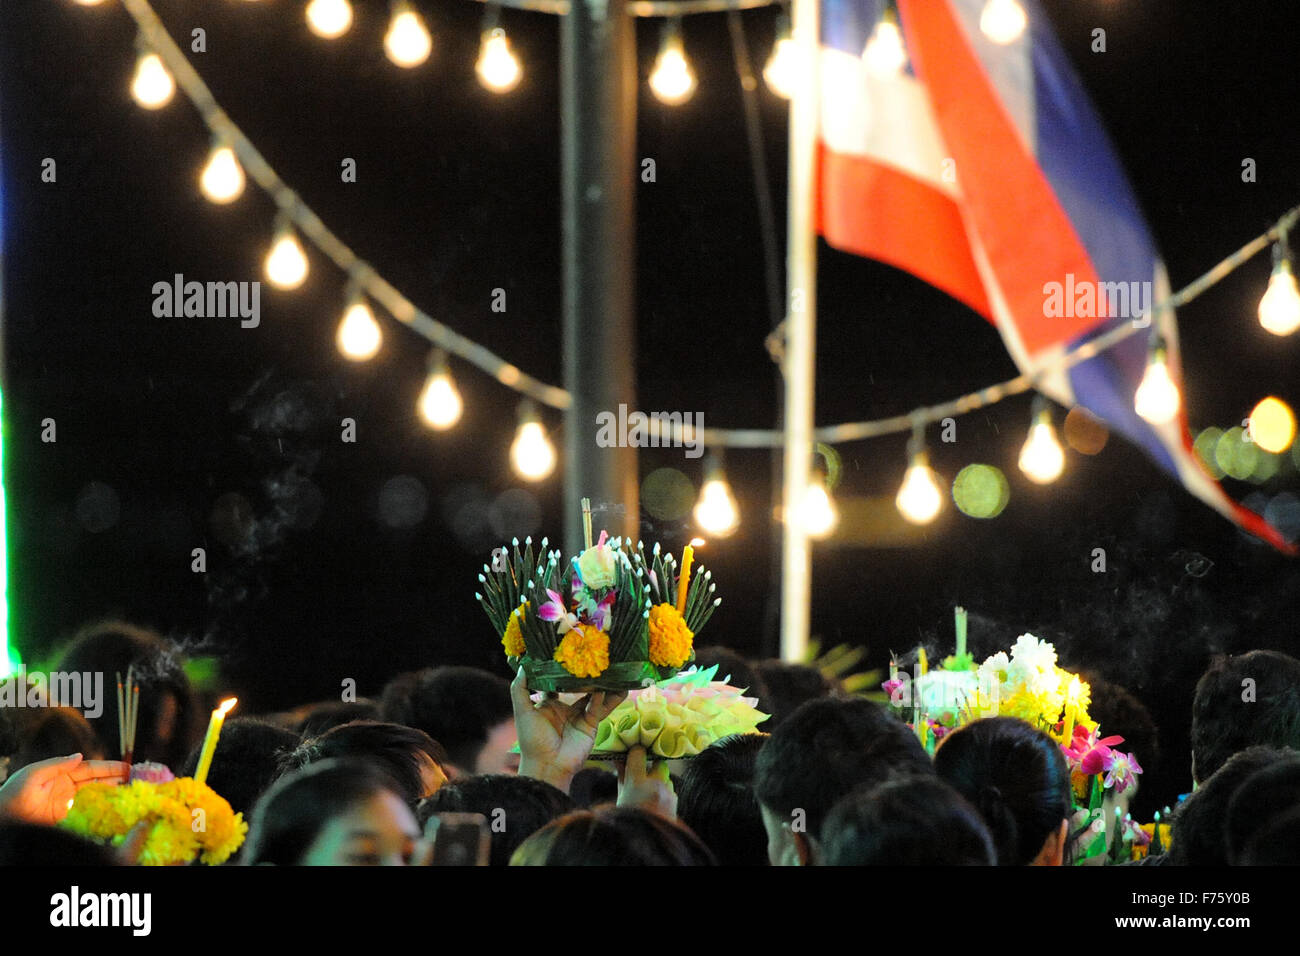 Bangkok, Thailand. 25th Nov, 2015. People hold water lanterns during the Loy Krathong festival in Bangkok, Thailand, - Stock Image